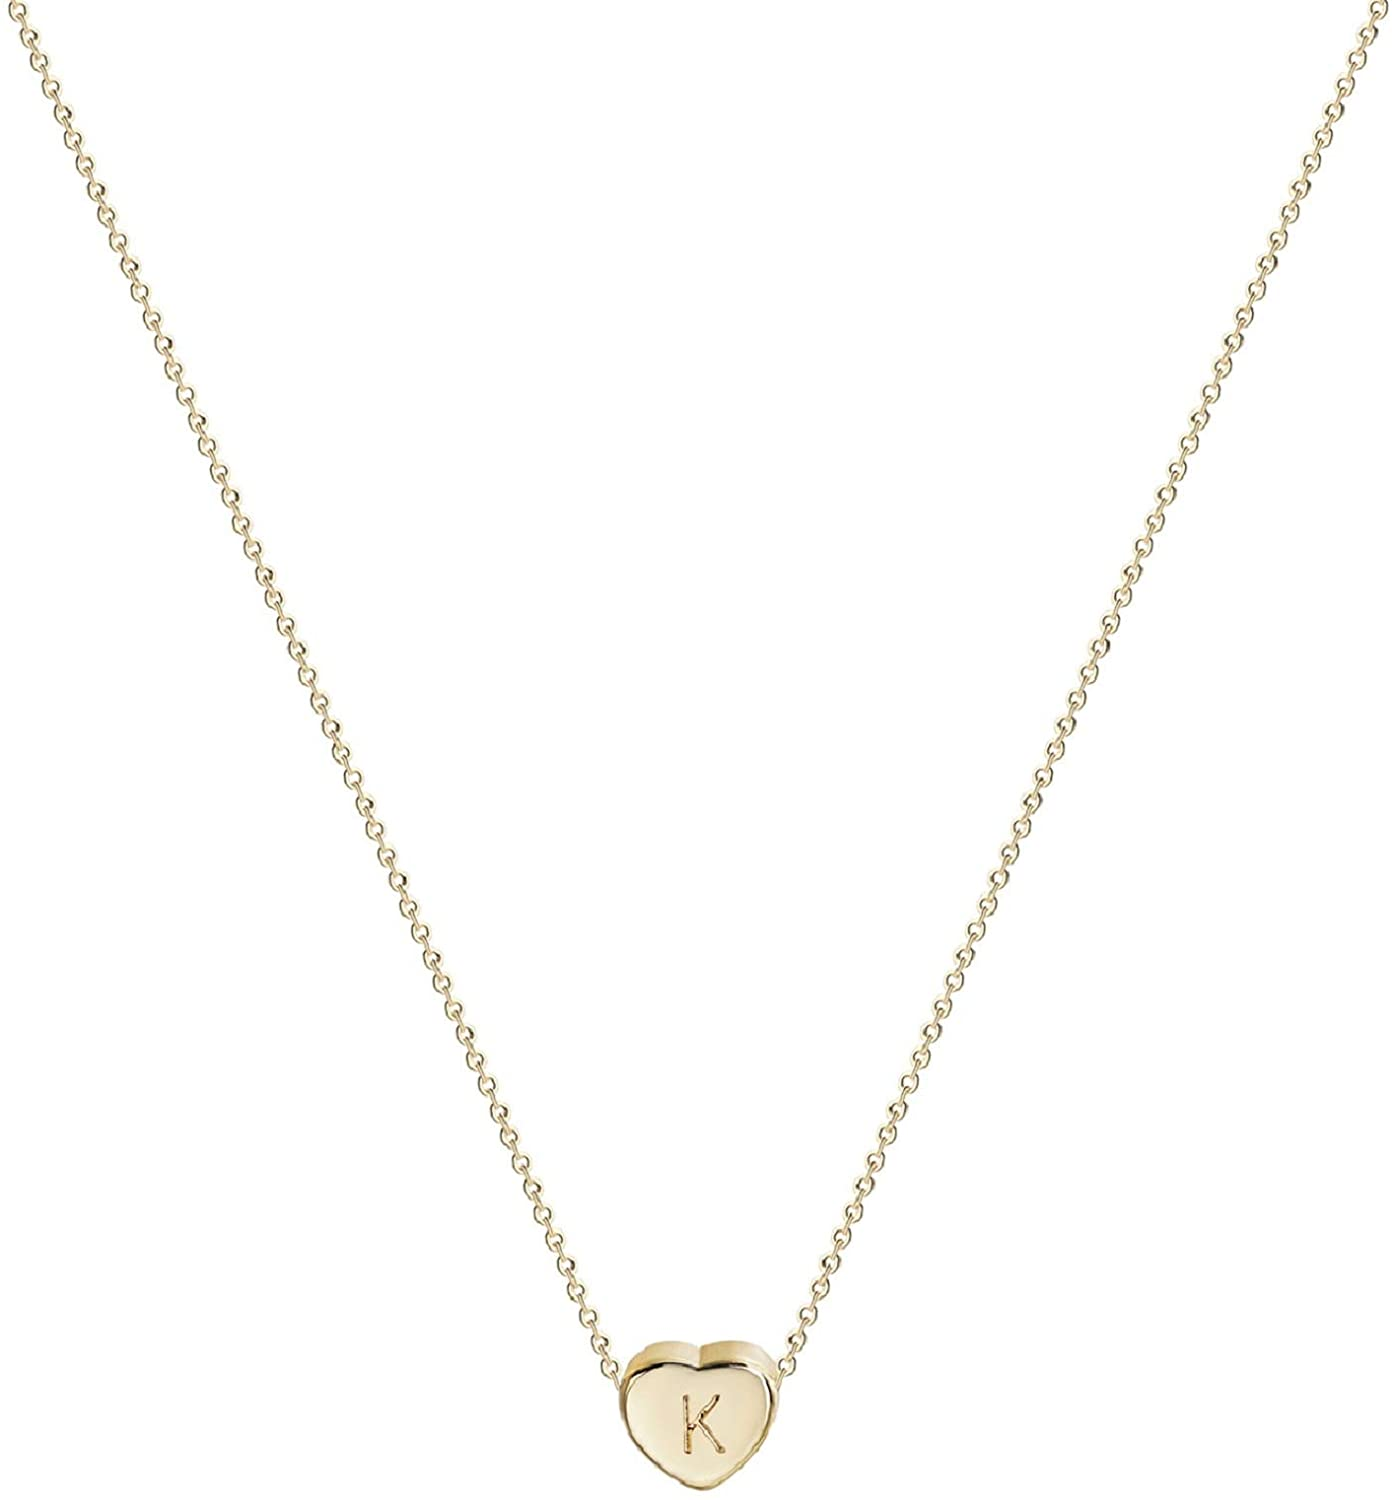 Love Heart Initial Pendant Necklace, 14 K Gold Plated Personalized Tiny Lovely Heart with Letters Charm Necklace for Women